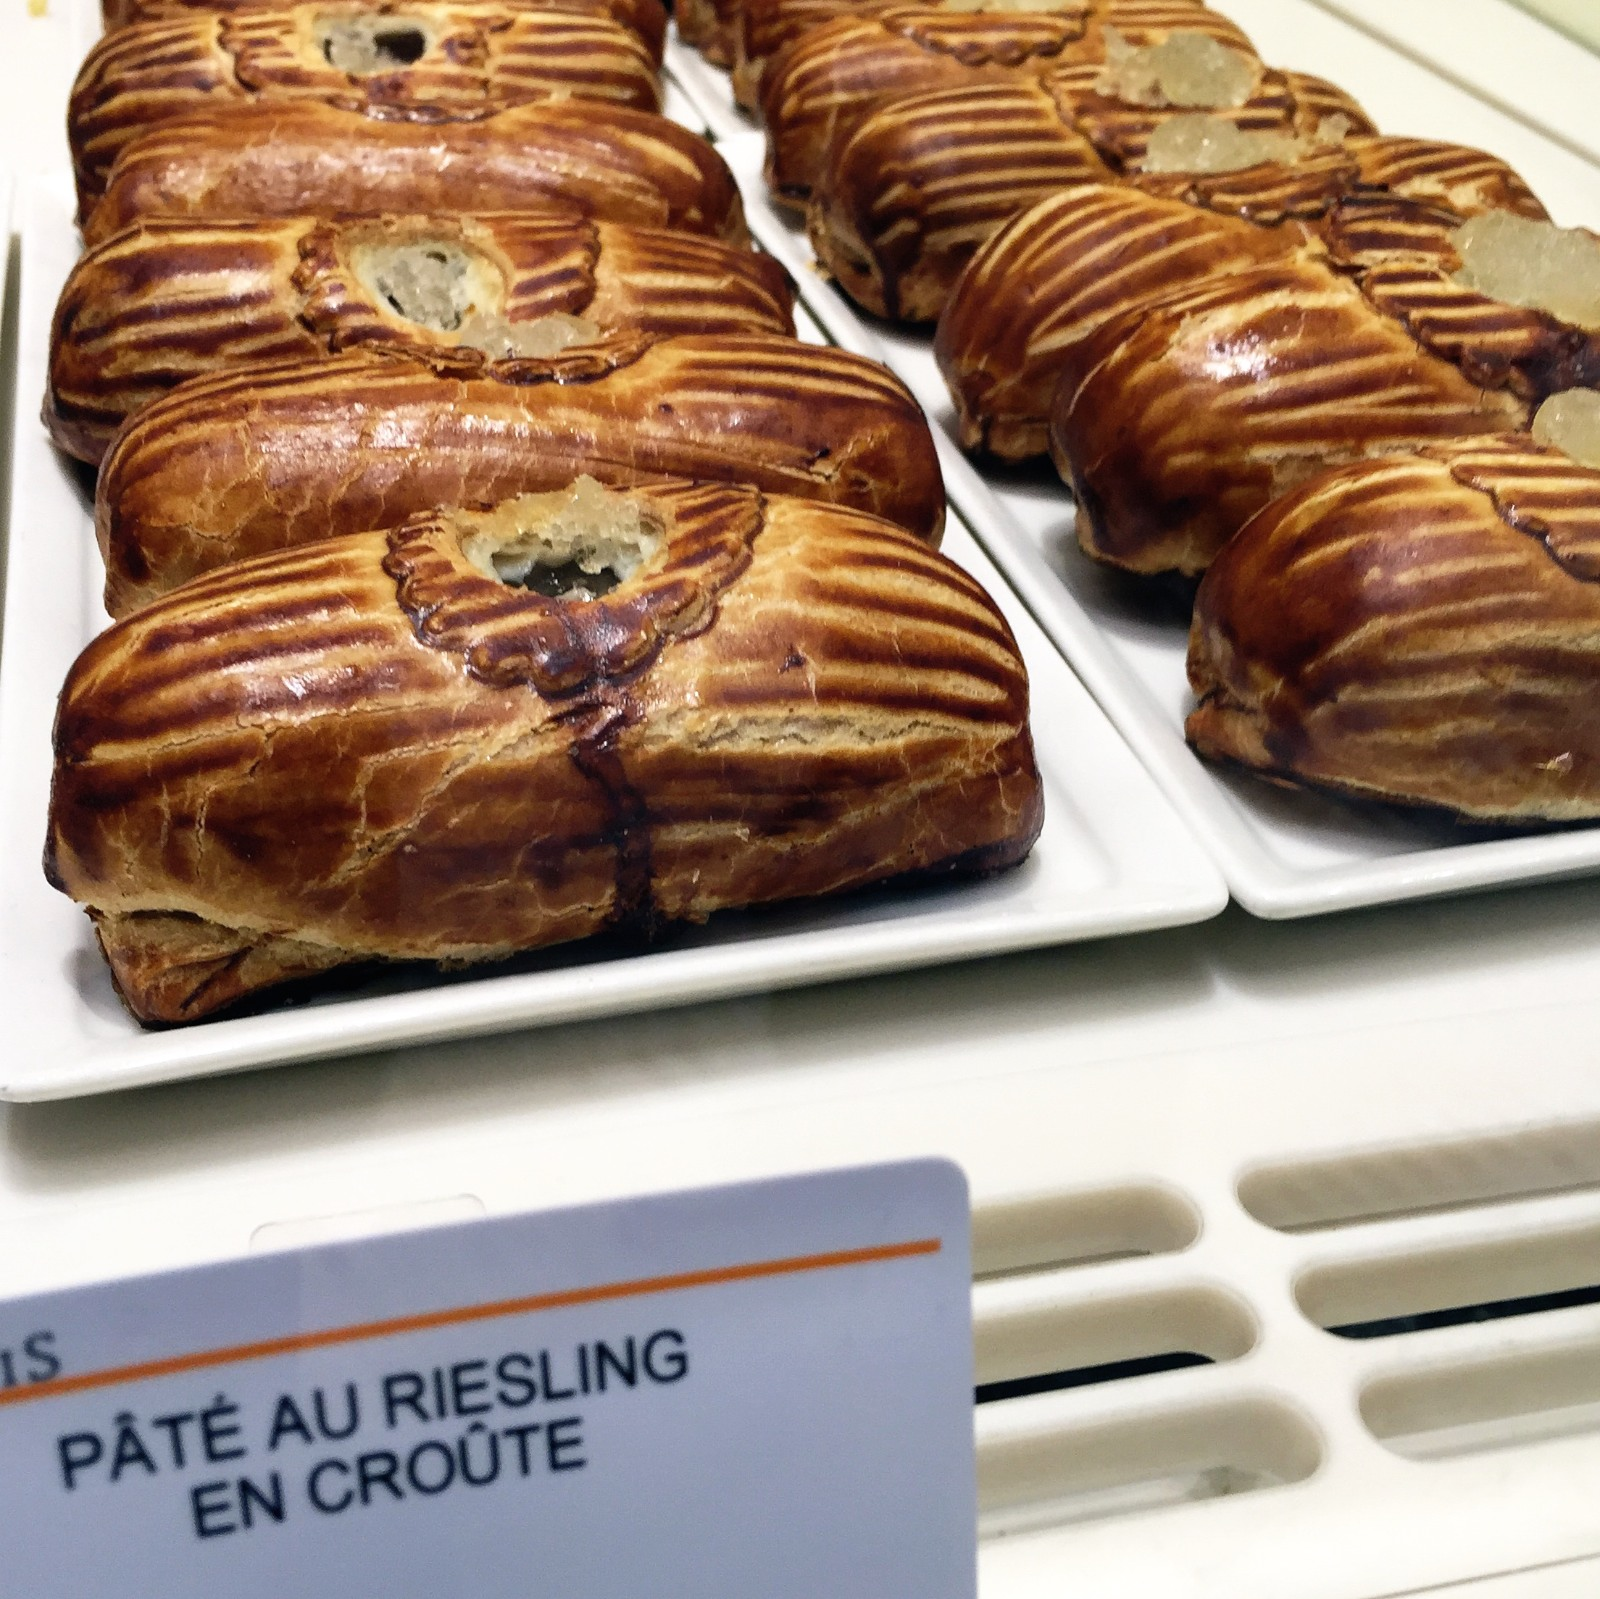 Luxembourg_Pate Au Riesling en Croute